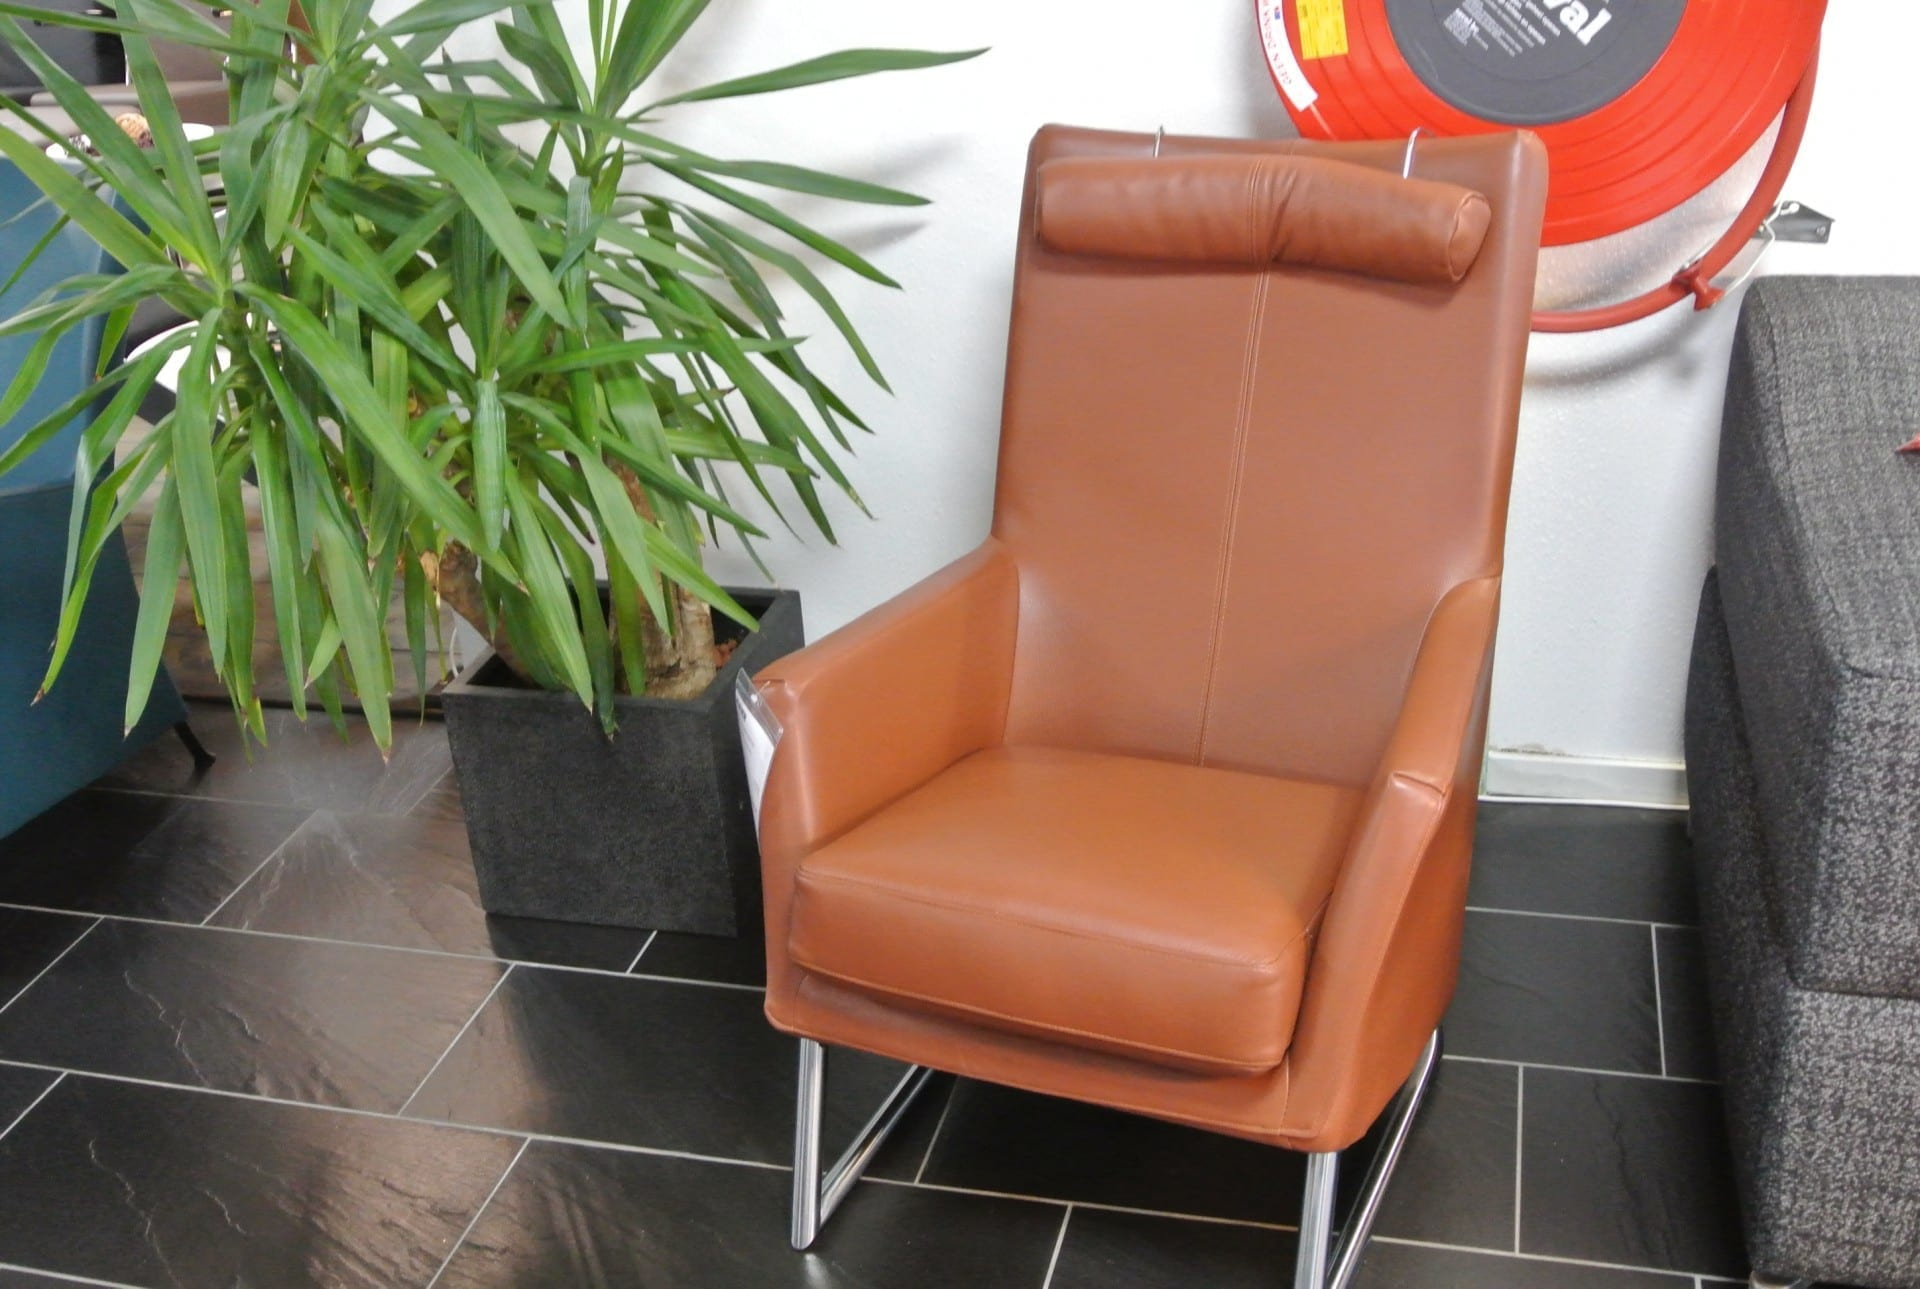 Montis Madonna fauteuil  - Refurbished